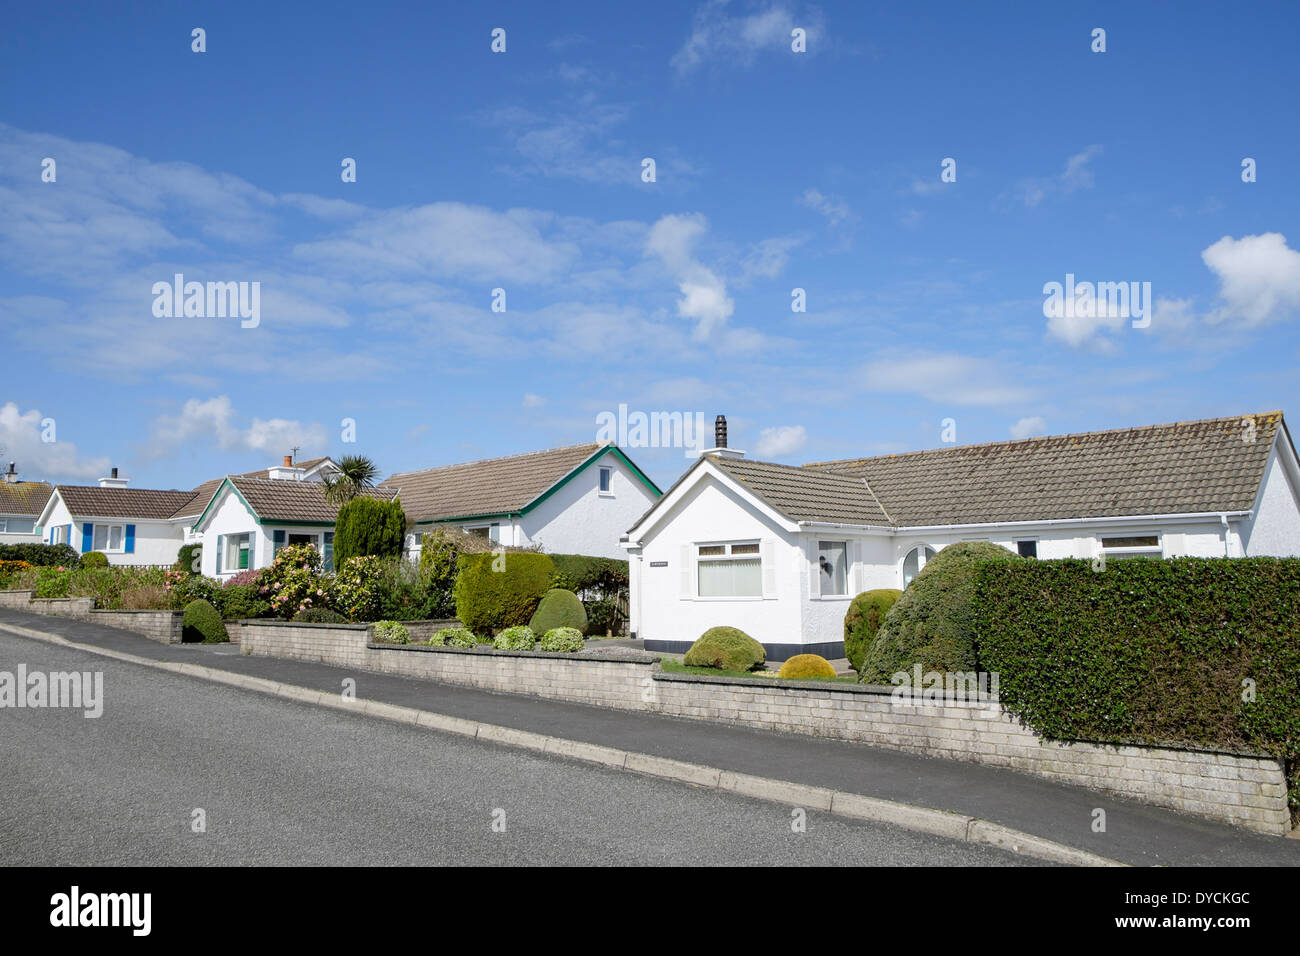 Detached bungalows on a street in popular village location. Benllech, Isle of Anglesey, North Wales, UK, Britain - Stock Image